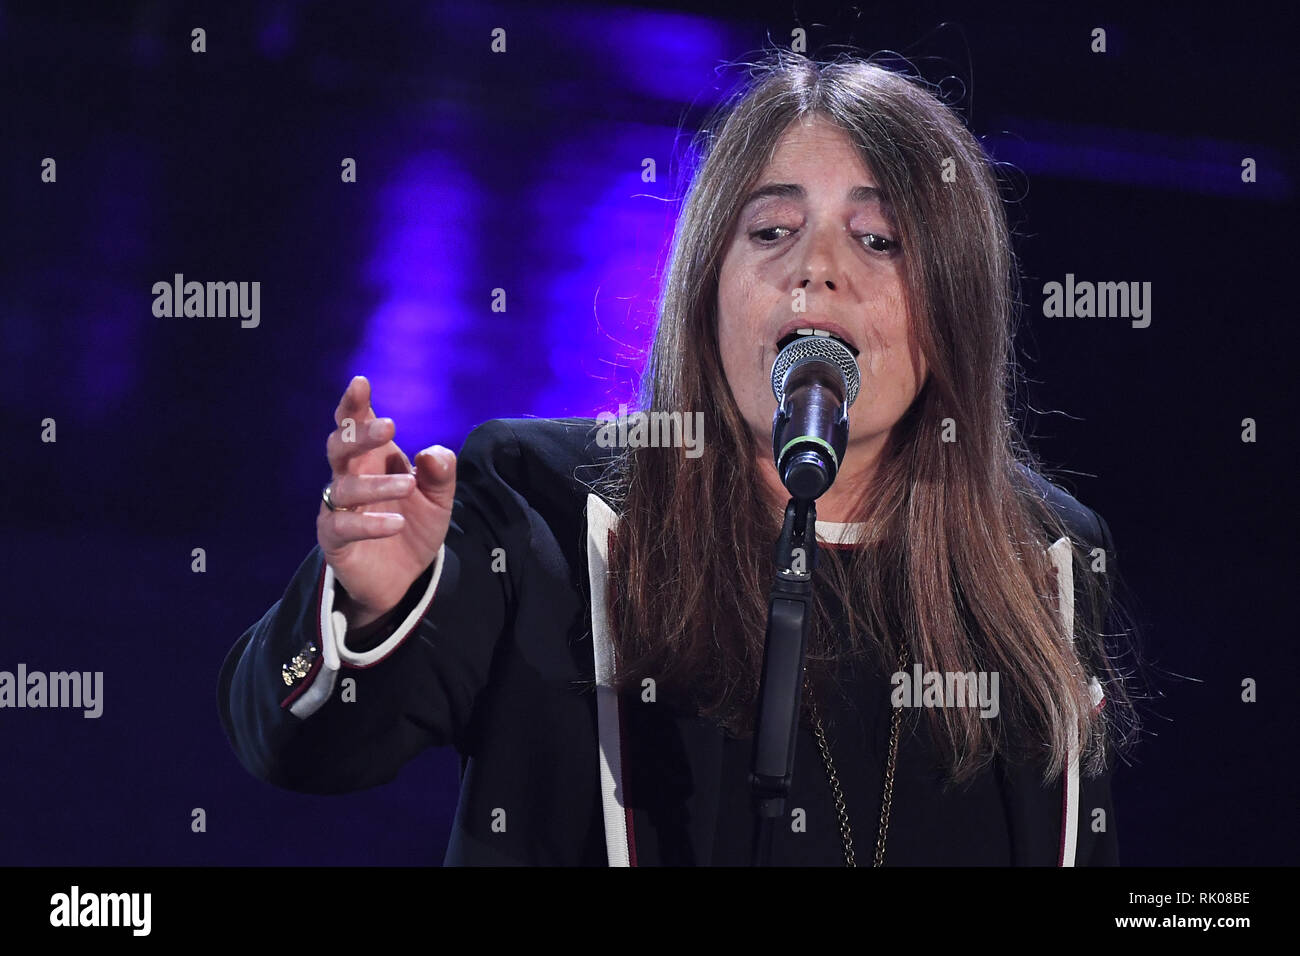 Foto Gian Mattia D'Alberto/LaPresse 08 Febbraio 2019 Sanremo, Italia  Spettacolo  Festival di Sanremo 2019, quarta serata Nella foto: Motta – Dov'è l'Italia, Nada  Photo Gian Mattia D'Alberto/LaPresse February 08th, 2019 Sanremo, Italy  Entertainment  Sanremo music festival 2019, fourth evening In the photo: Motta – Dov'è l'Italia, Nada Stock Photo